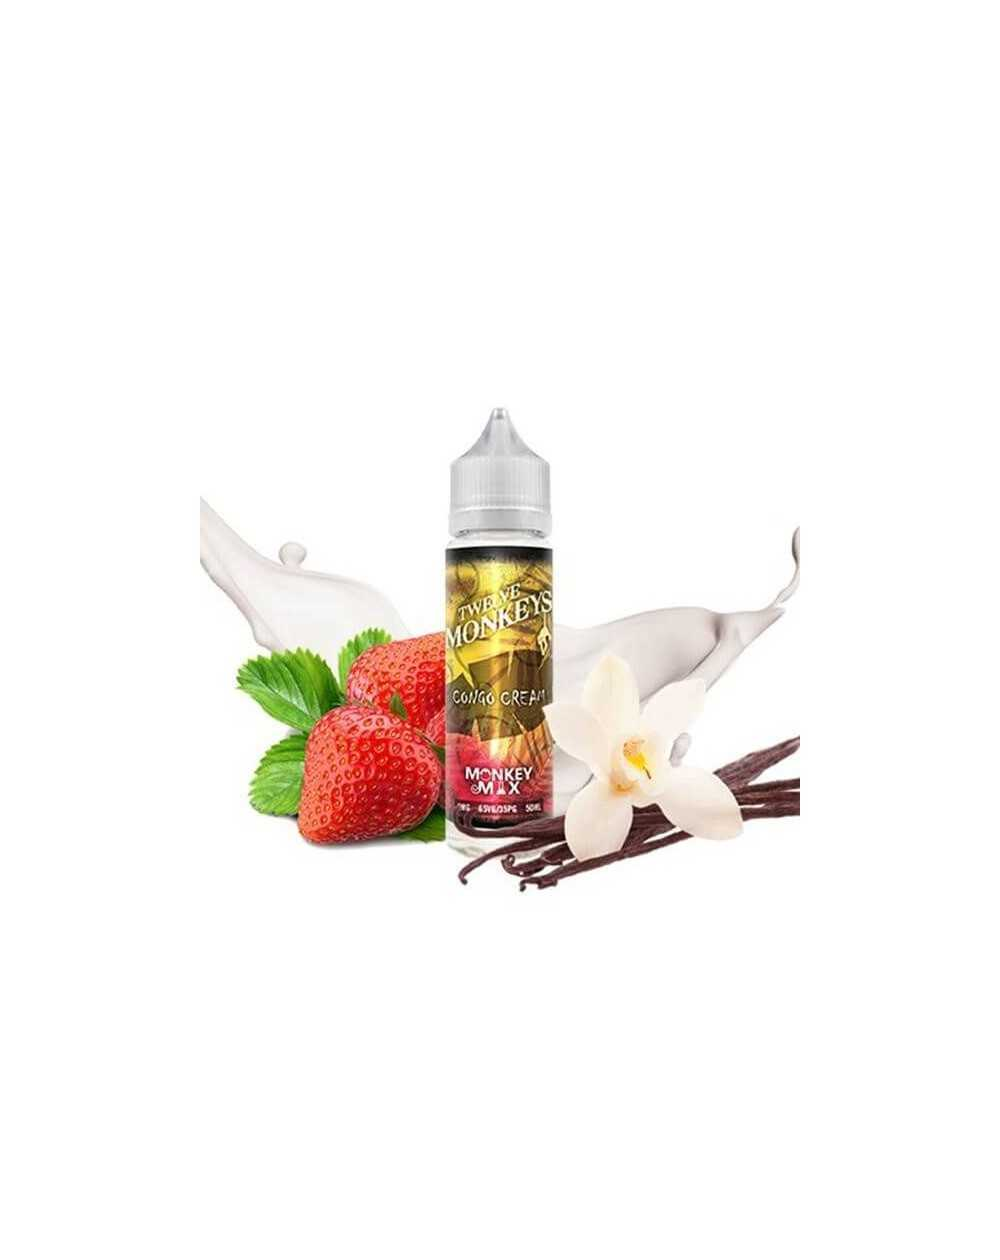 Congo Cream 50ml - Twelve Monkeys Classics-1